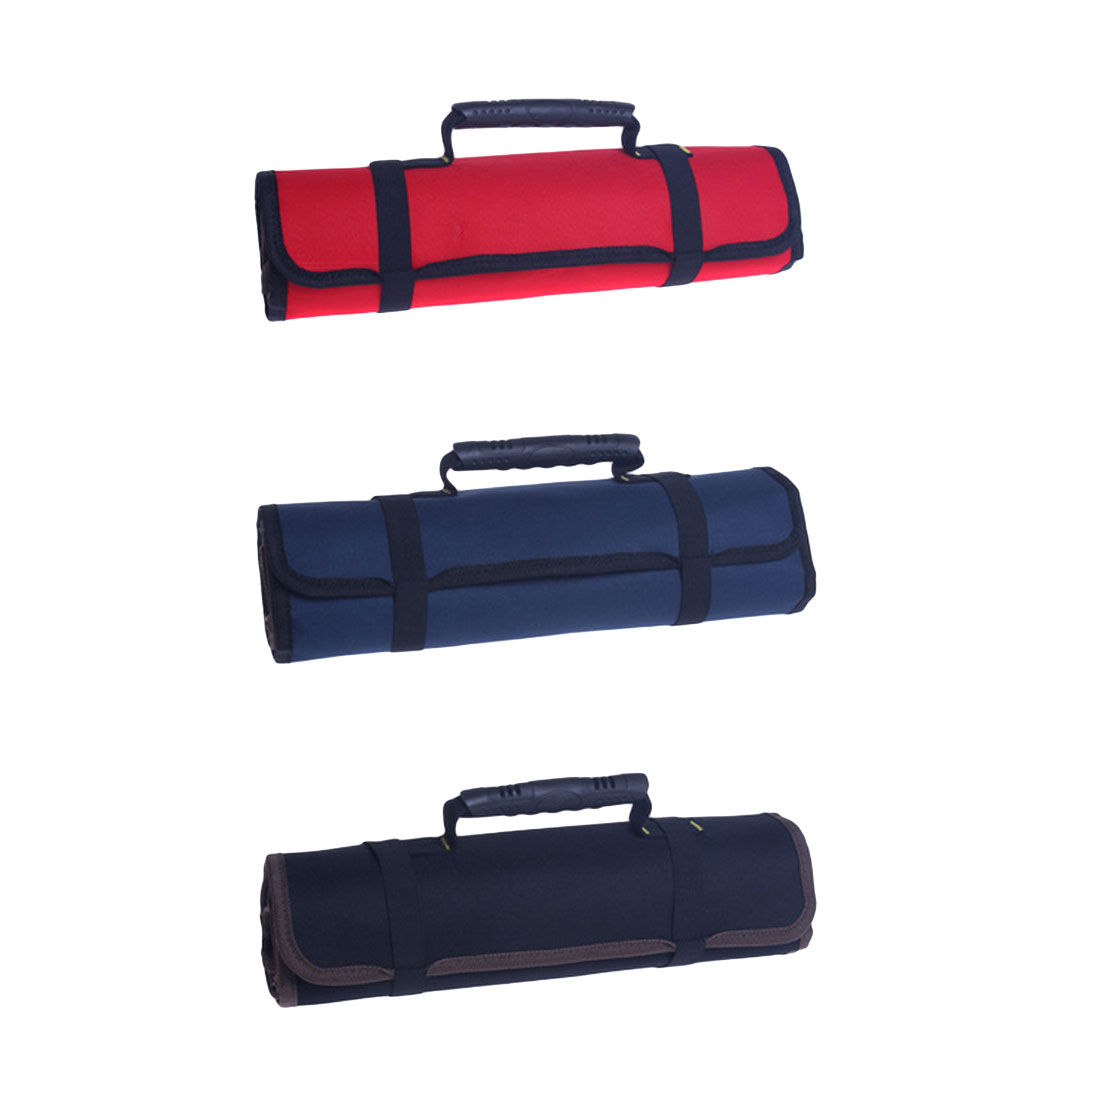 Multifunction Tool Bags Practical Carrying Handles Oxford Canvas Chisel Roll Bags For Tool 3 Colors Instrument Case